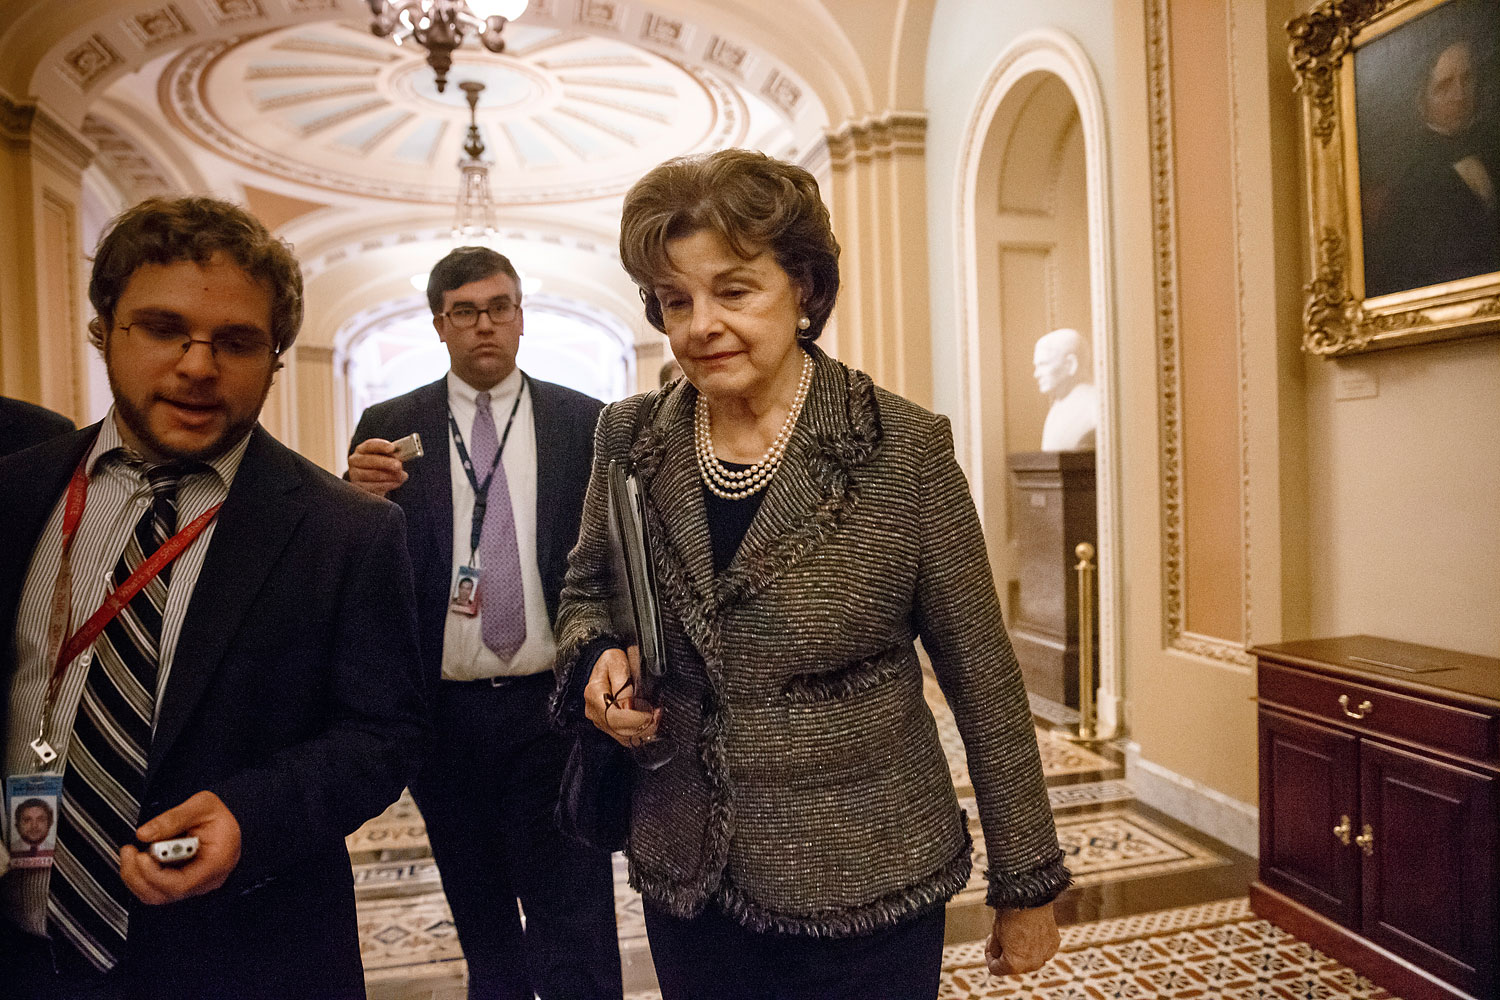 Sen. Dianne Feinstein, D-Calif., chair of the Senate Intelligence Committee, leaves the chamber at the Capitol in Washington, March 5, 2014.